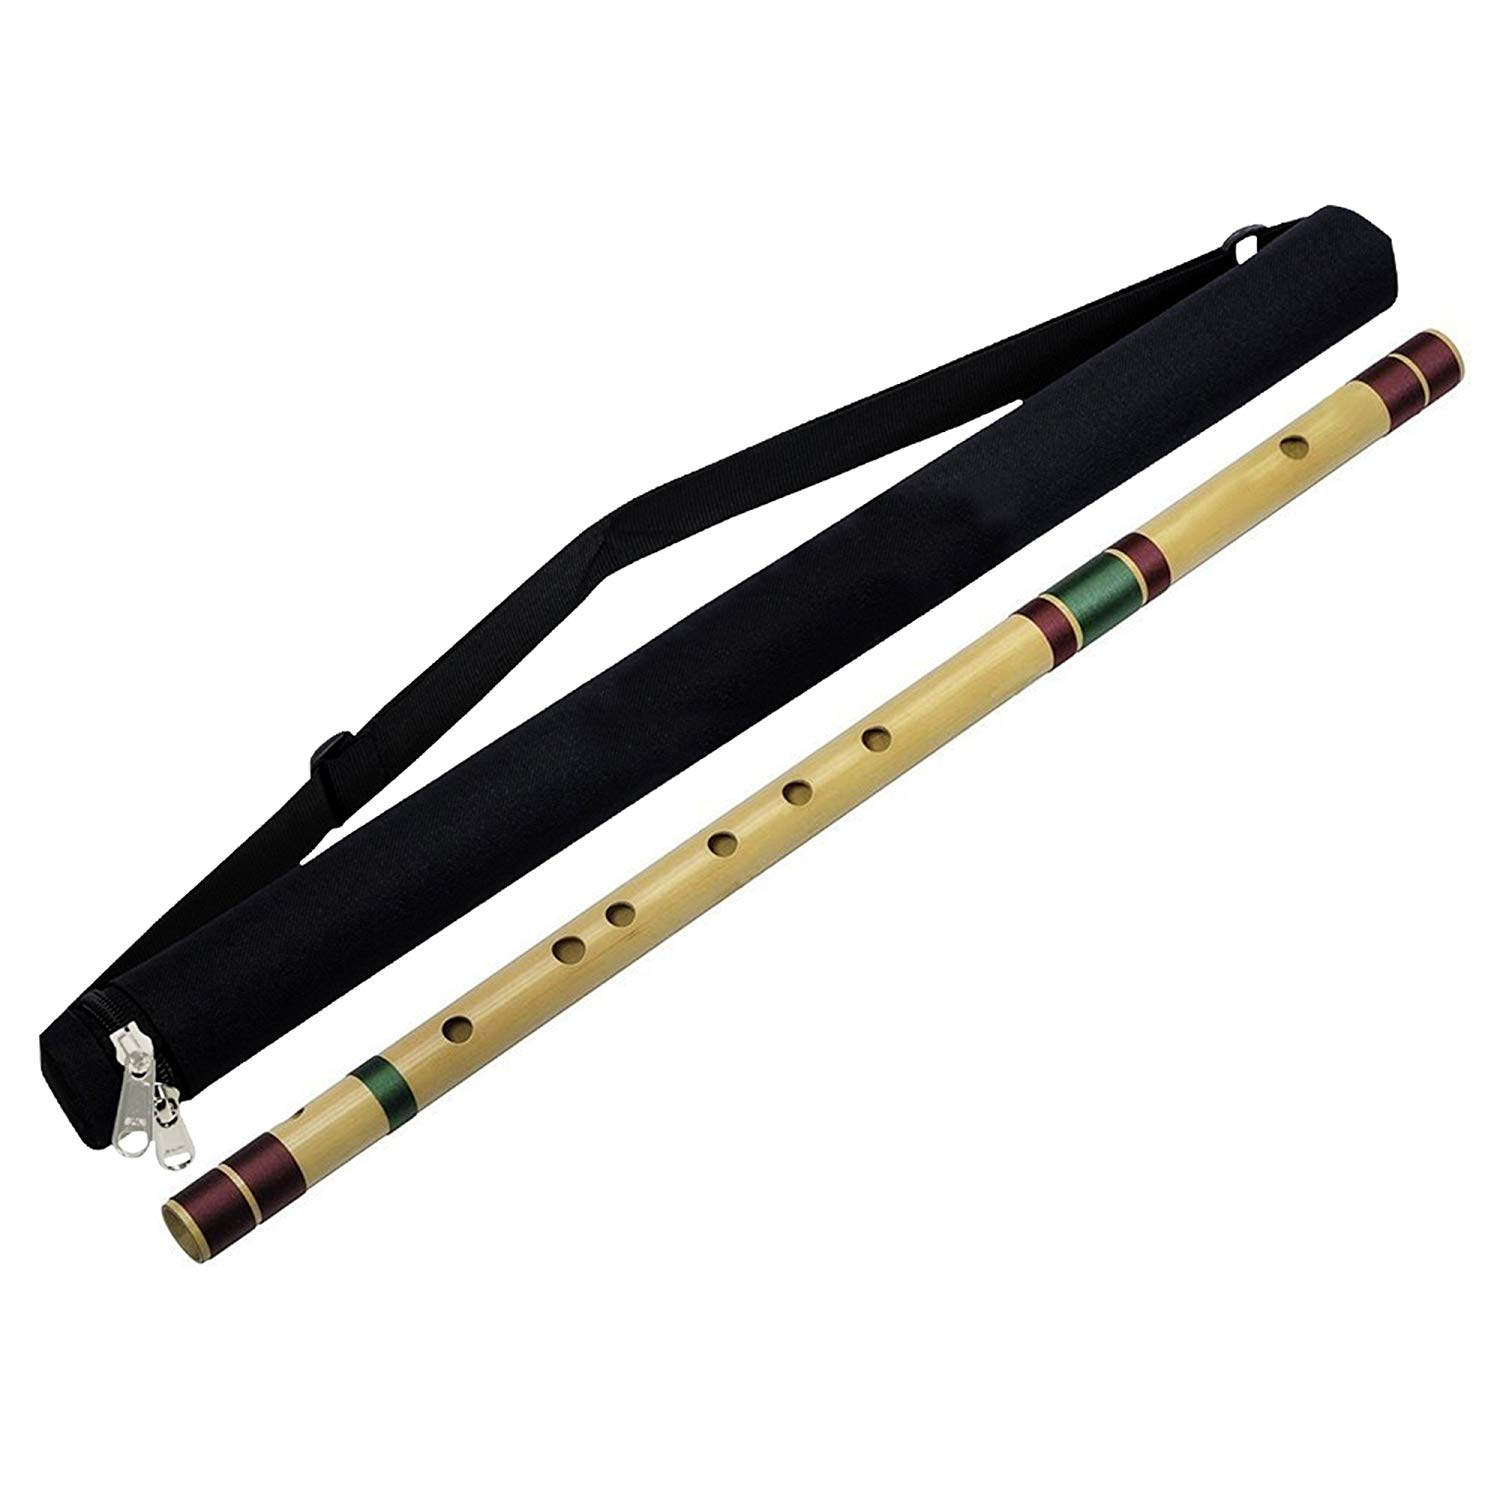 Cheap Bamboo Flute Making, find Bamboo Flute Making deals on